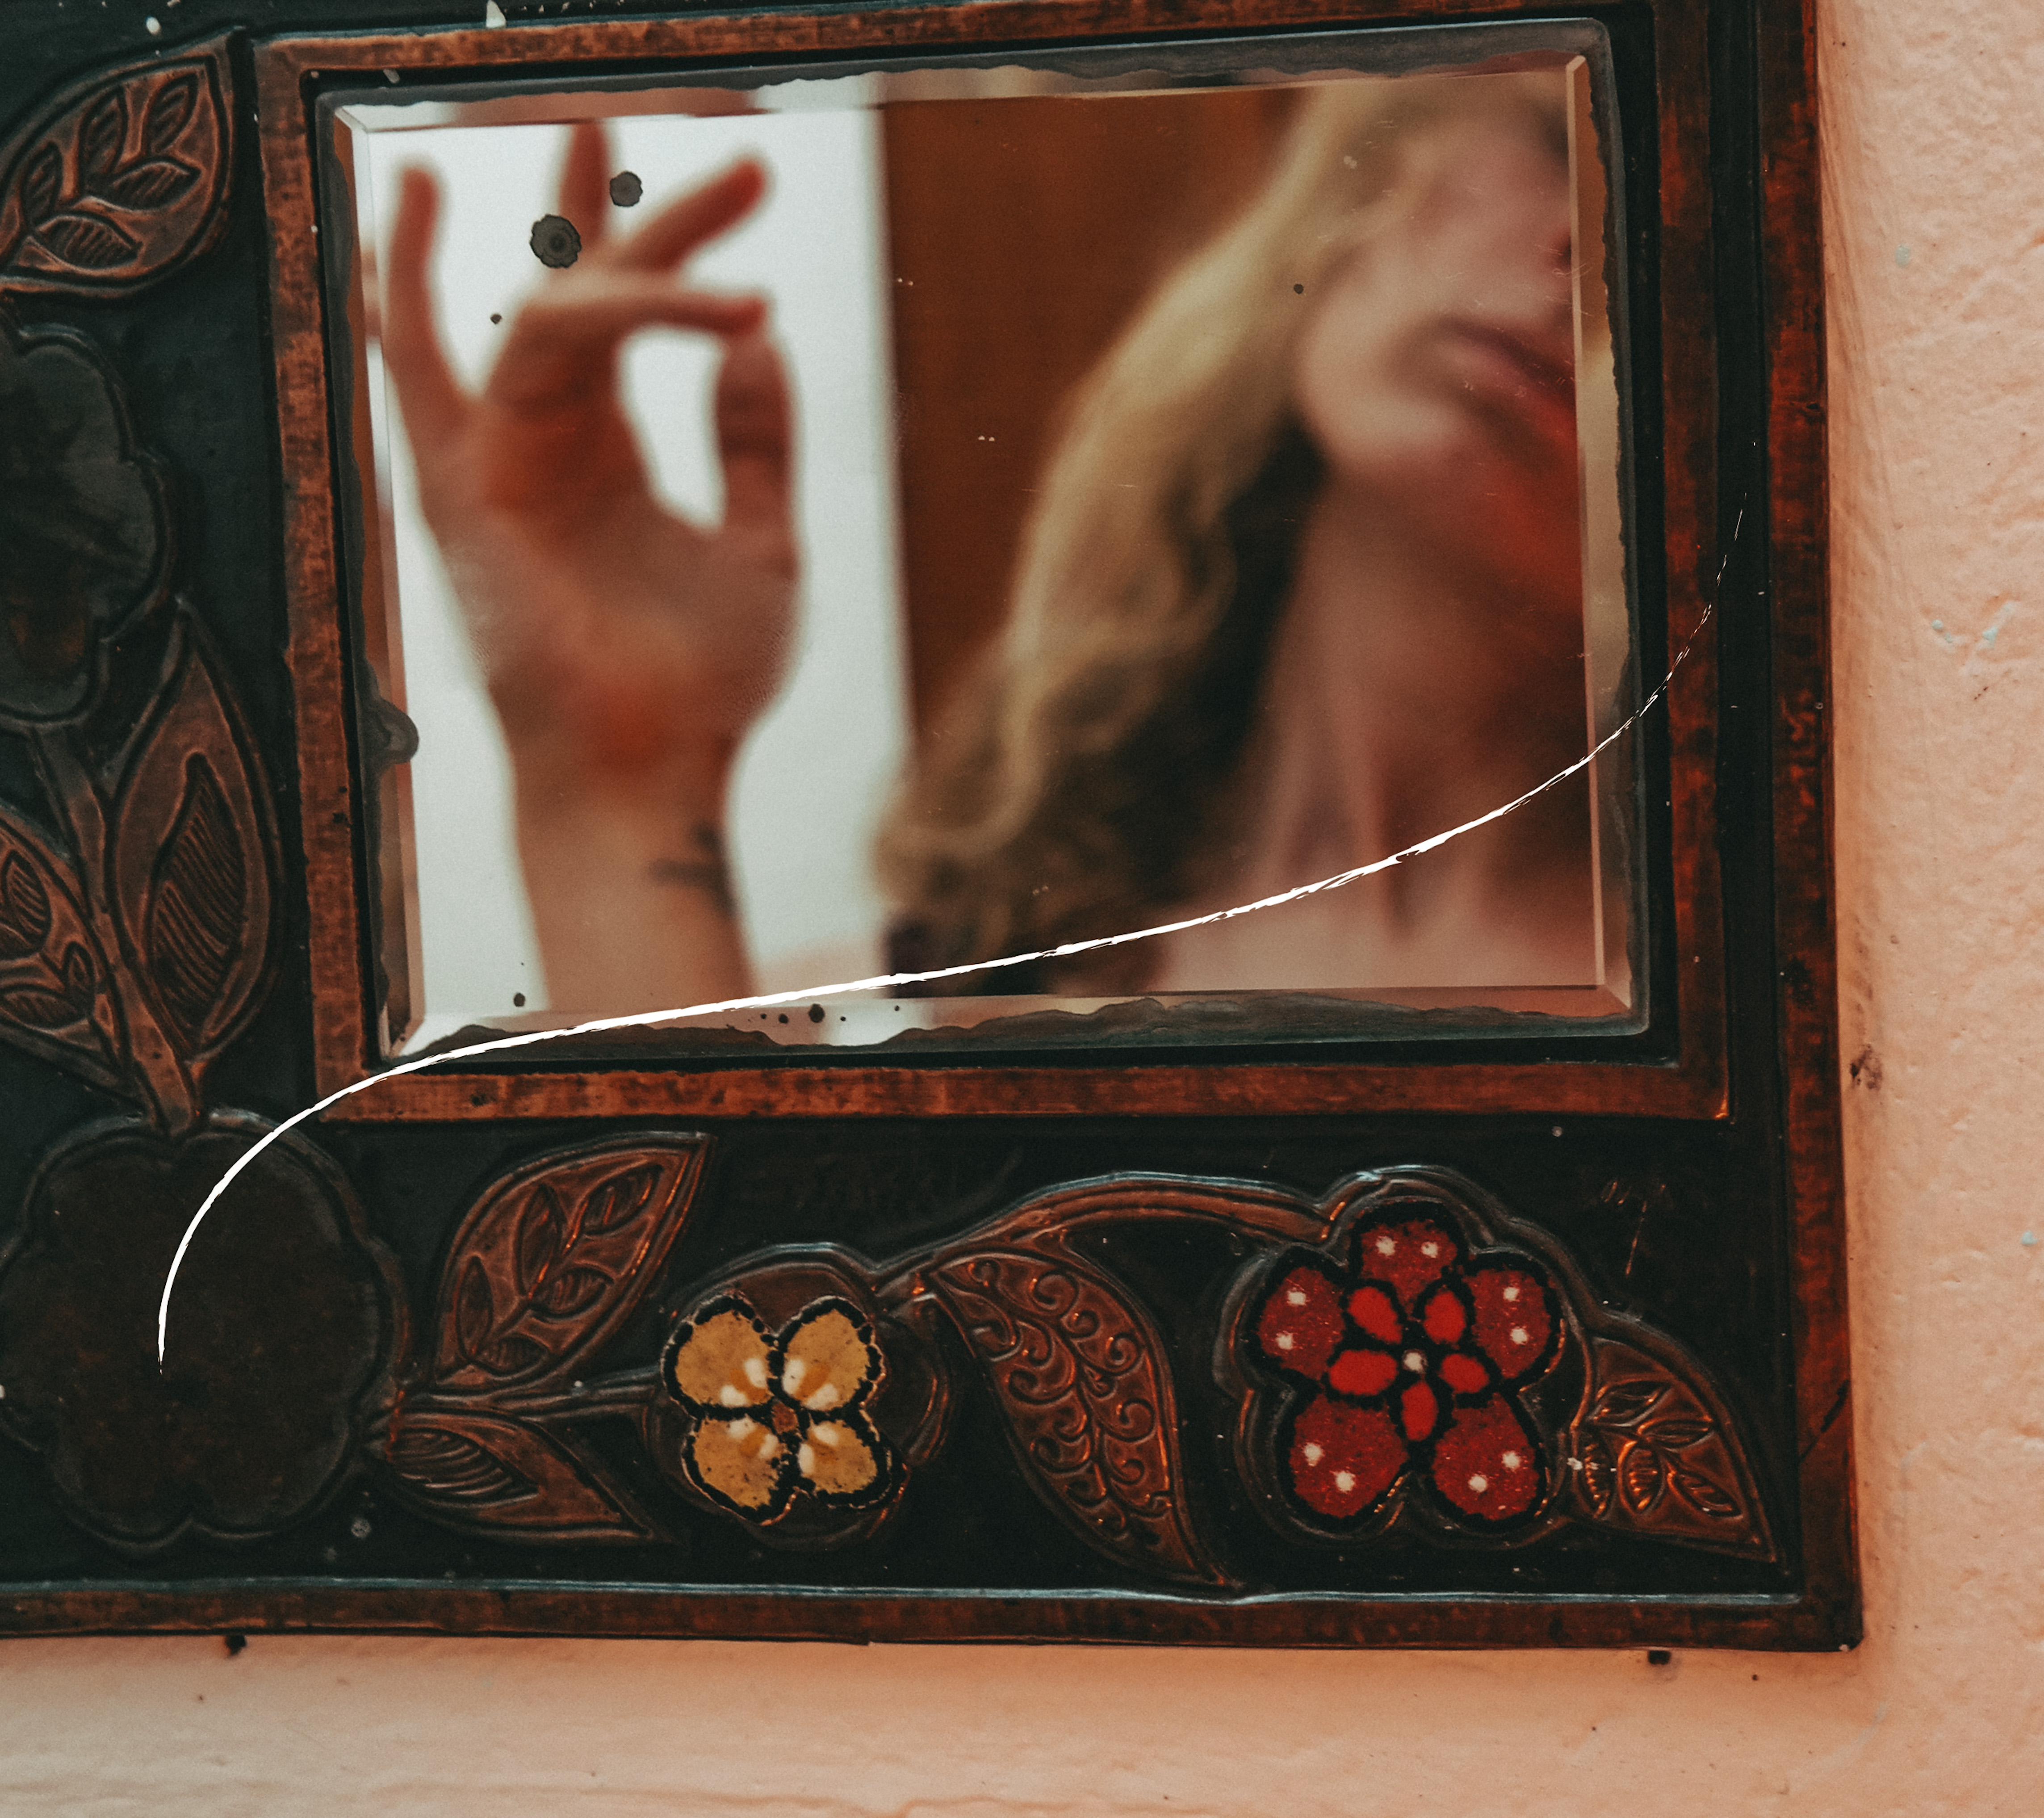 hand and face of a woman in a mirror